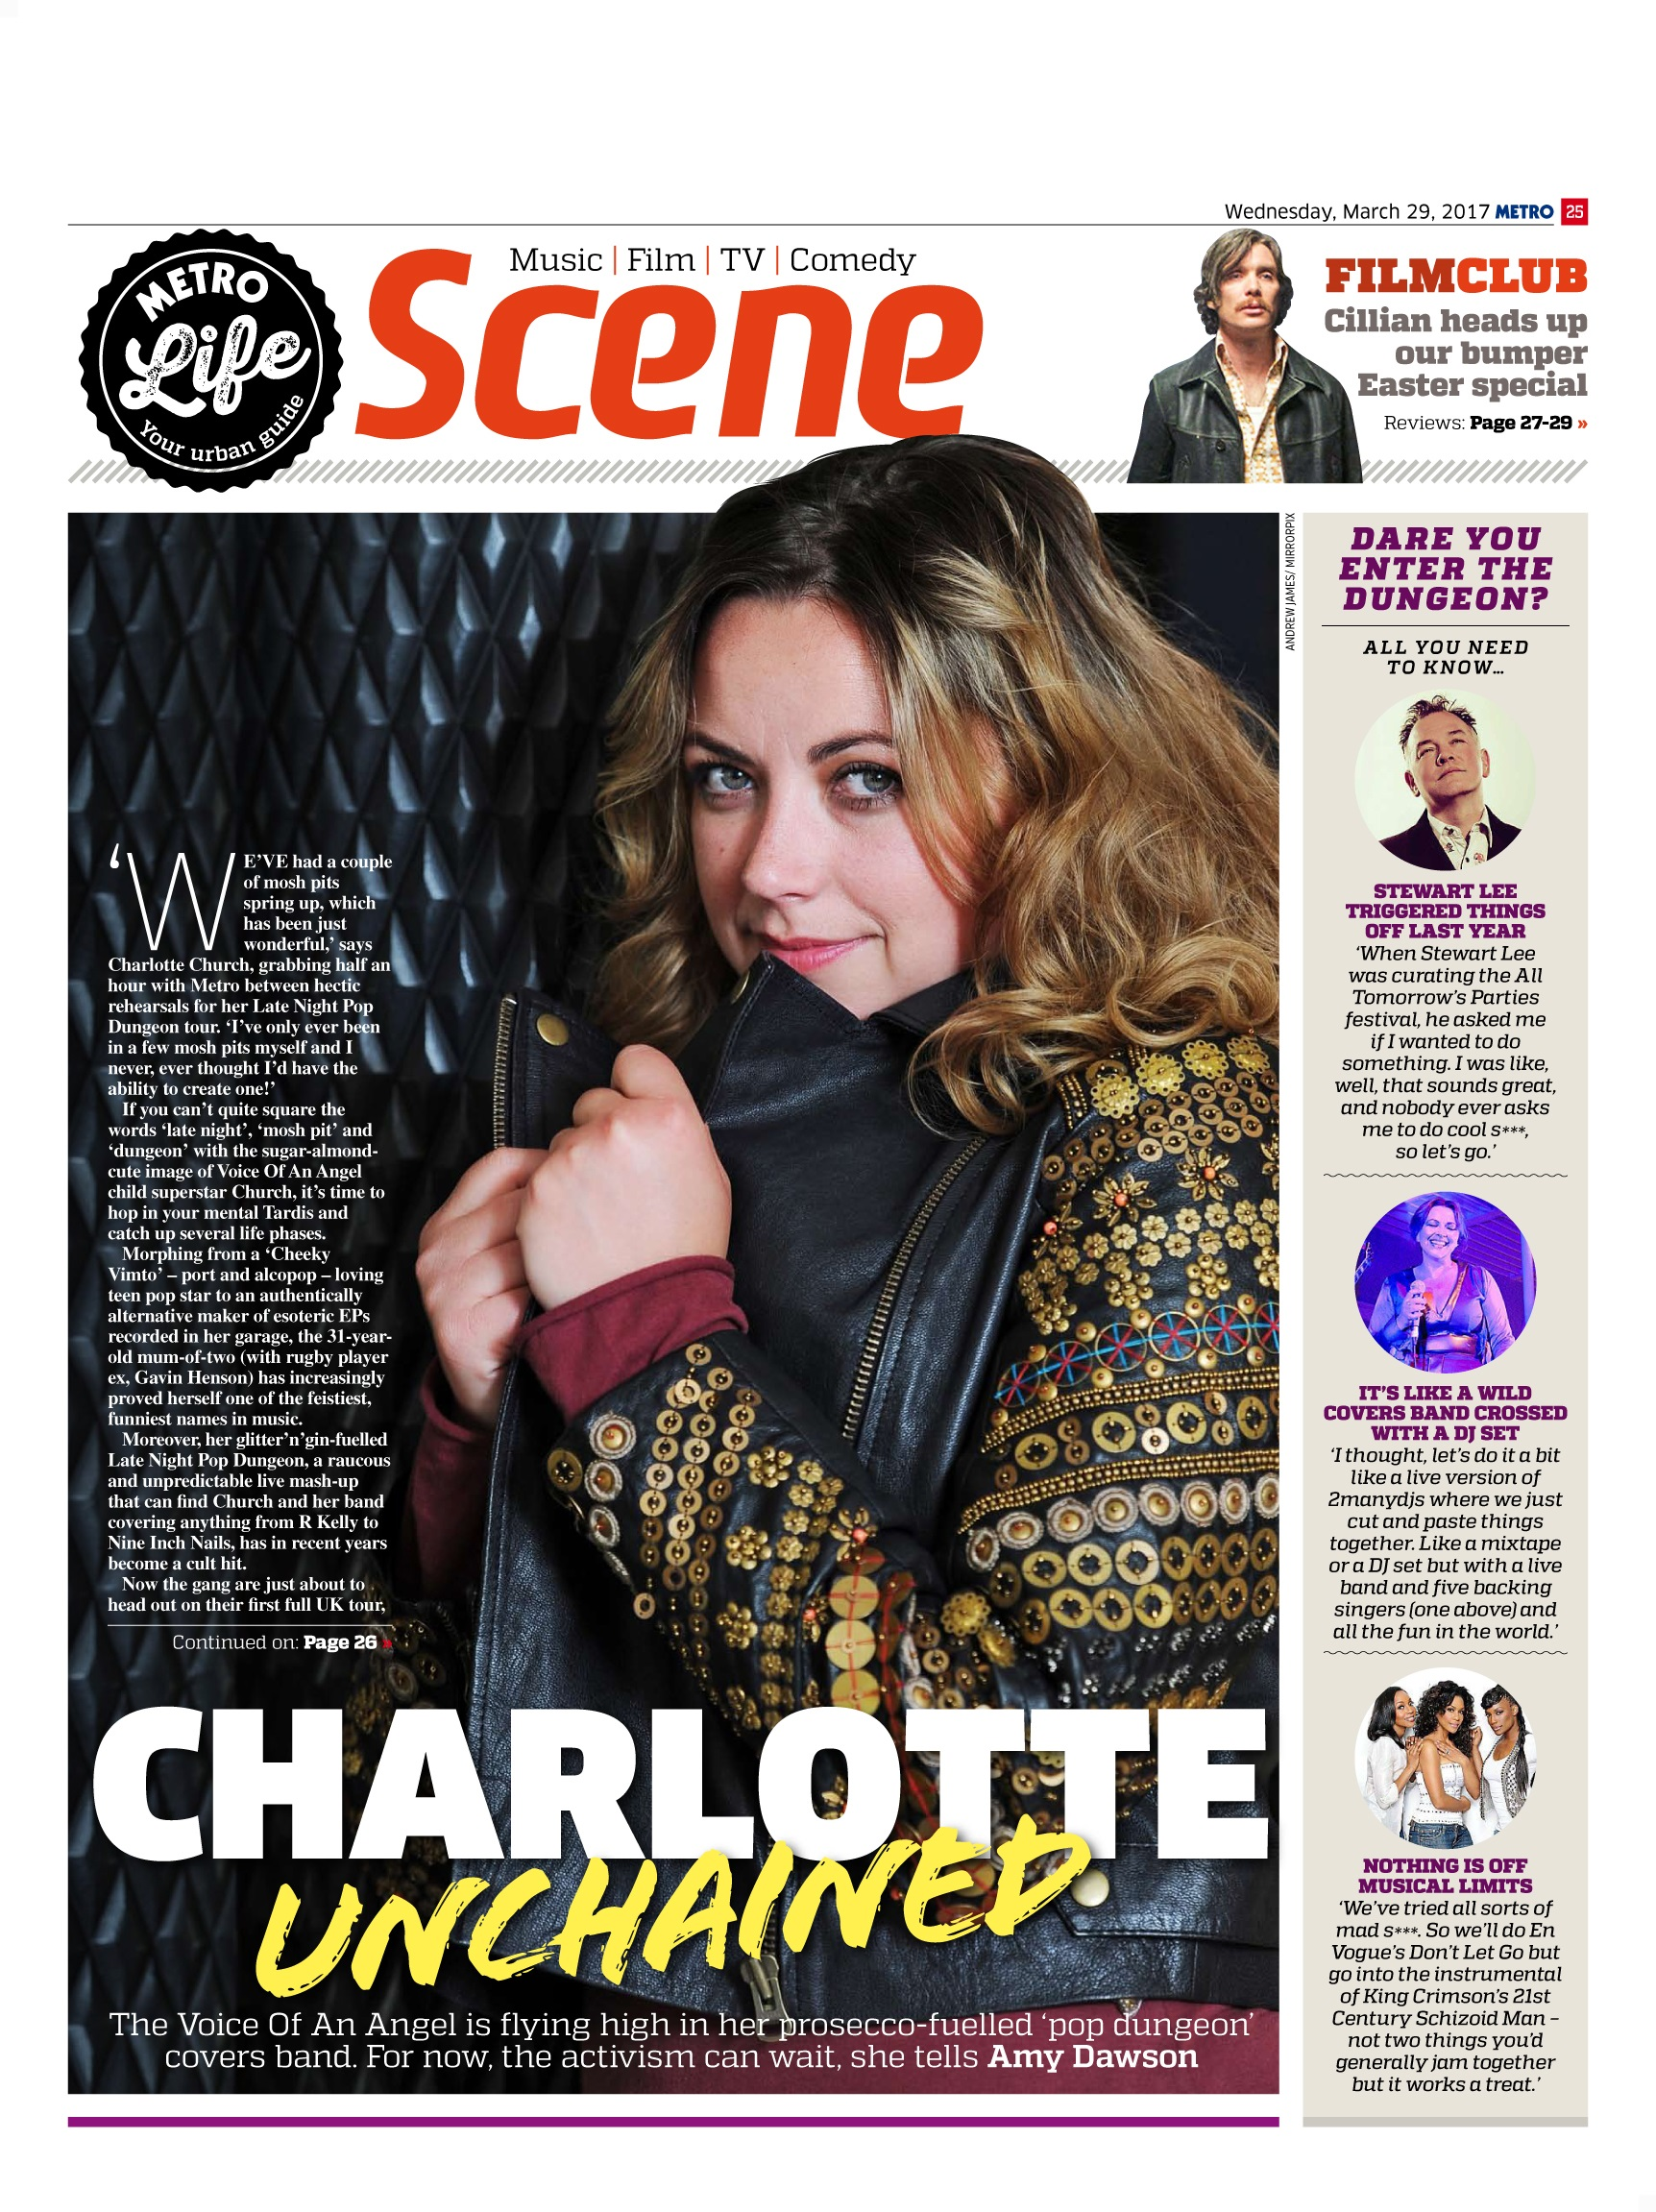 Charlotte Church: Unchained (Metro, 29th Mar 2017)